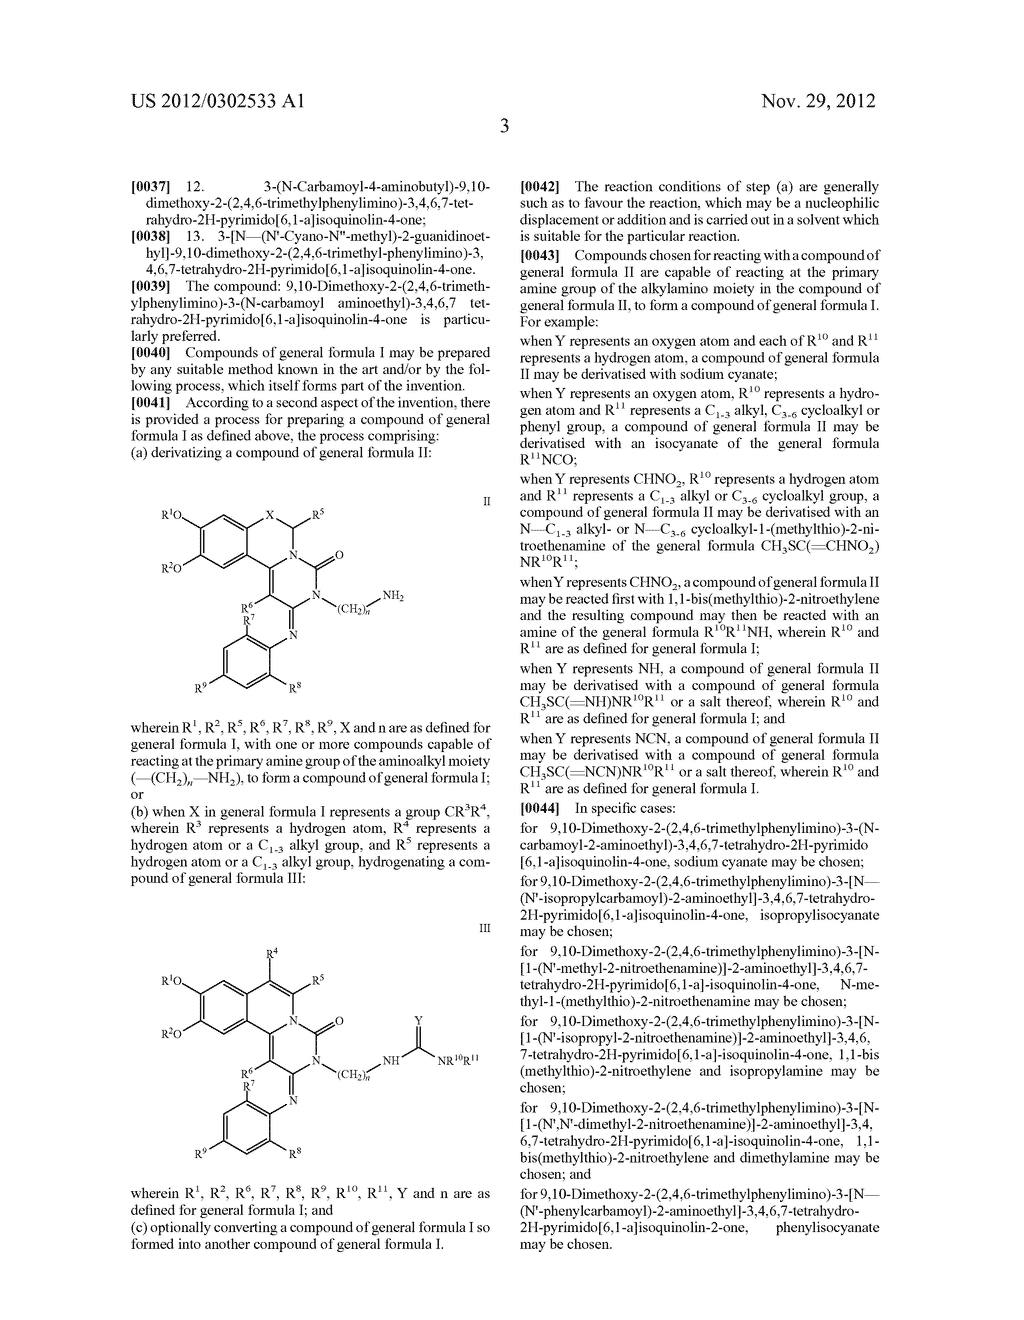 DERIVATIVES OF PYRIMIDO [6,1-A] ISOQUINOLIN-4-ONE - diagram, schematic, and image 09